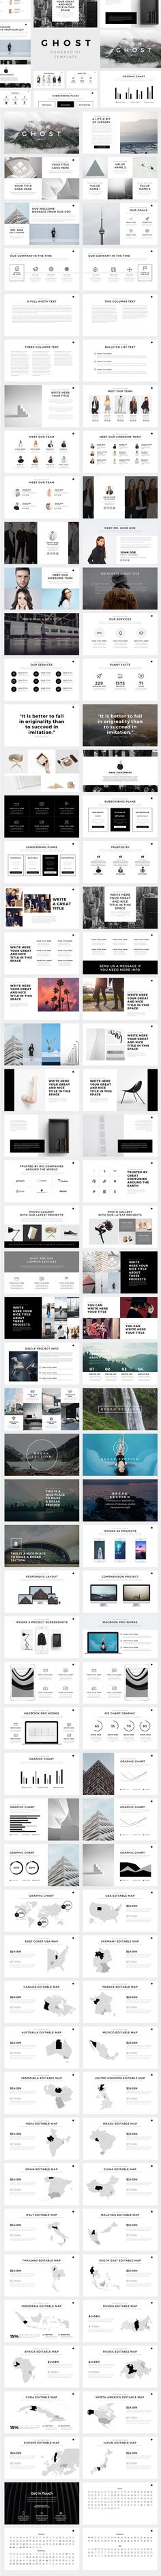 Ghost Minimal Powerpoint Template. Download here: http://graphicriver.net/item/ghost-minimal-powerpoint-template/16820687?ref=ksioks